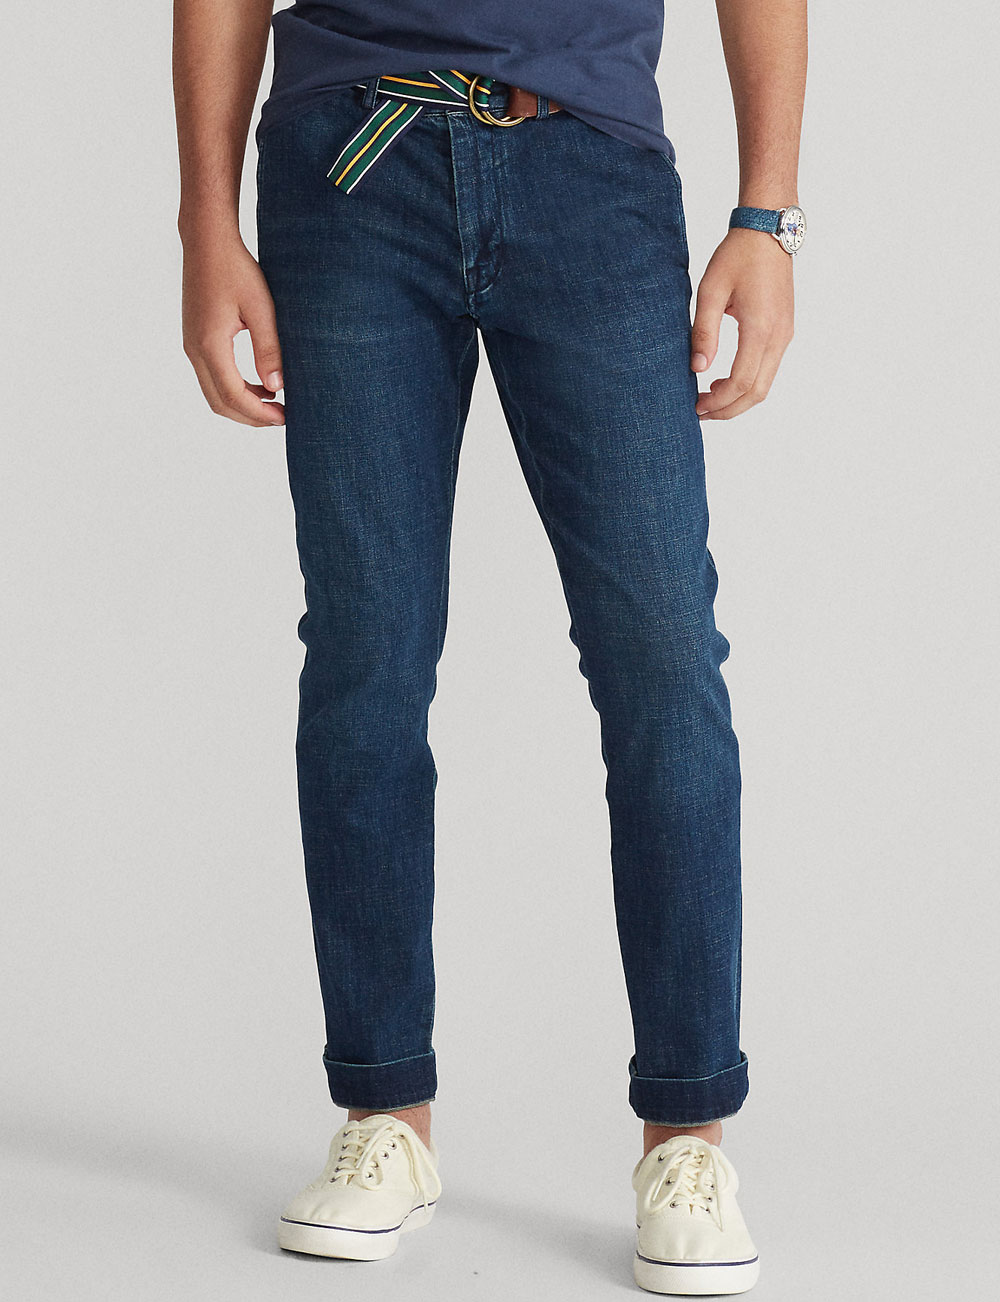 Jean chino Polo Ralph Lauren pour homme